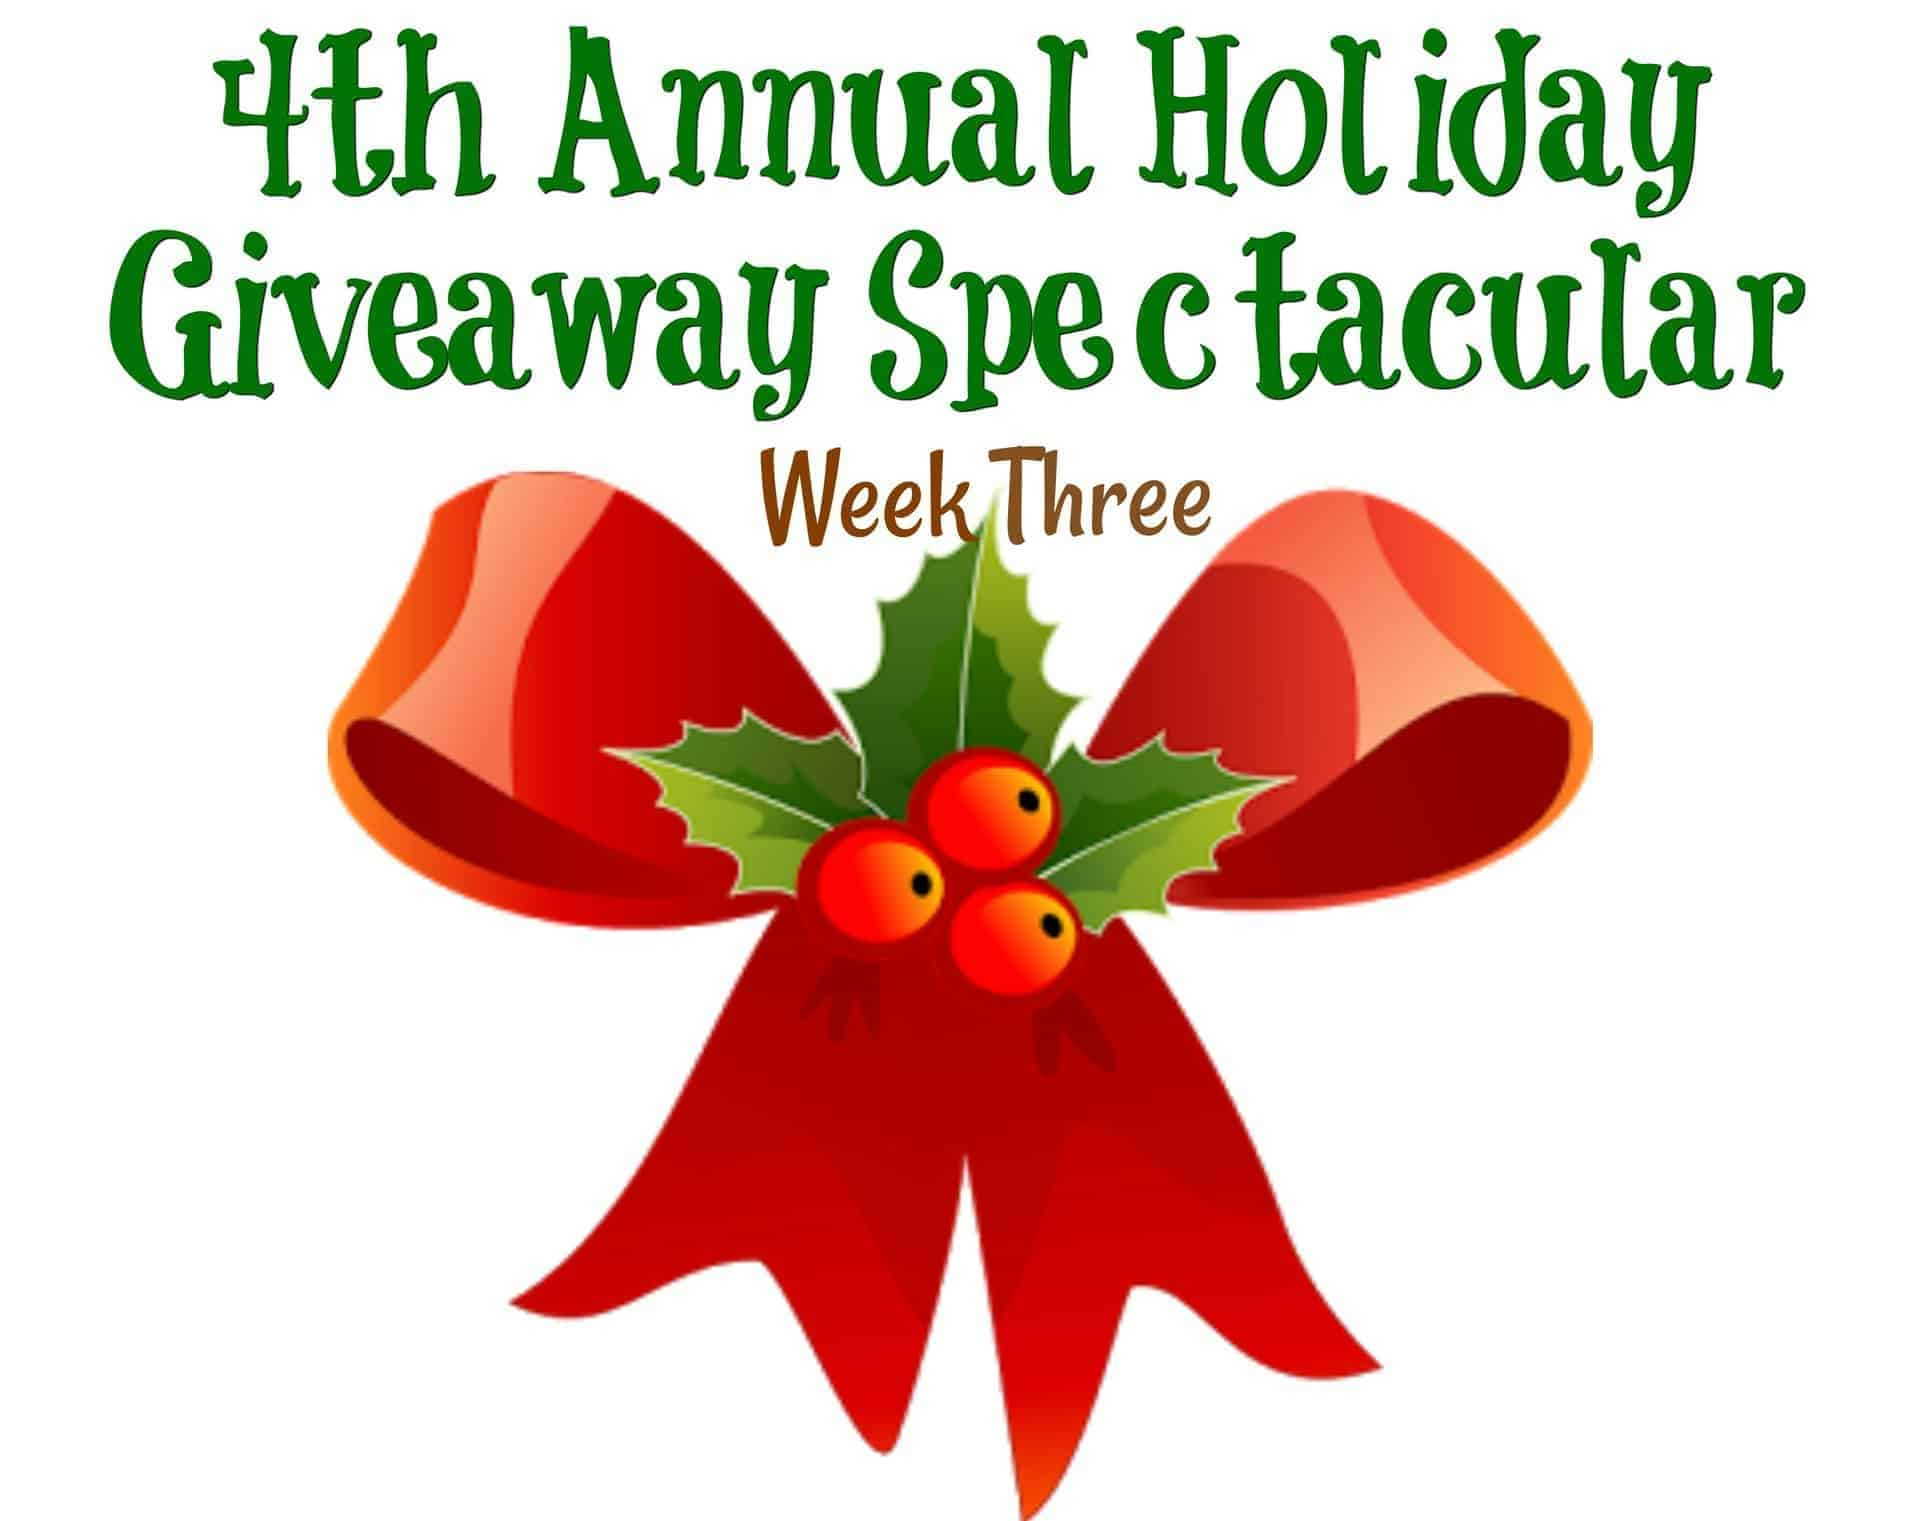 4th Annual Holiday Giveaway Spectacular Week Three